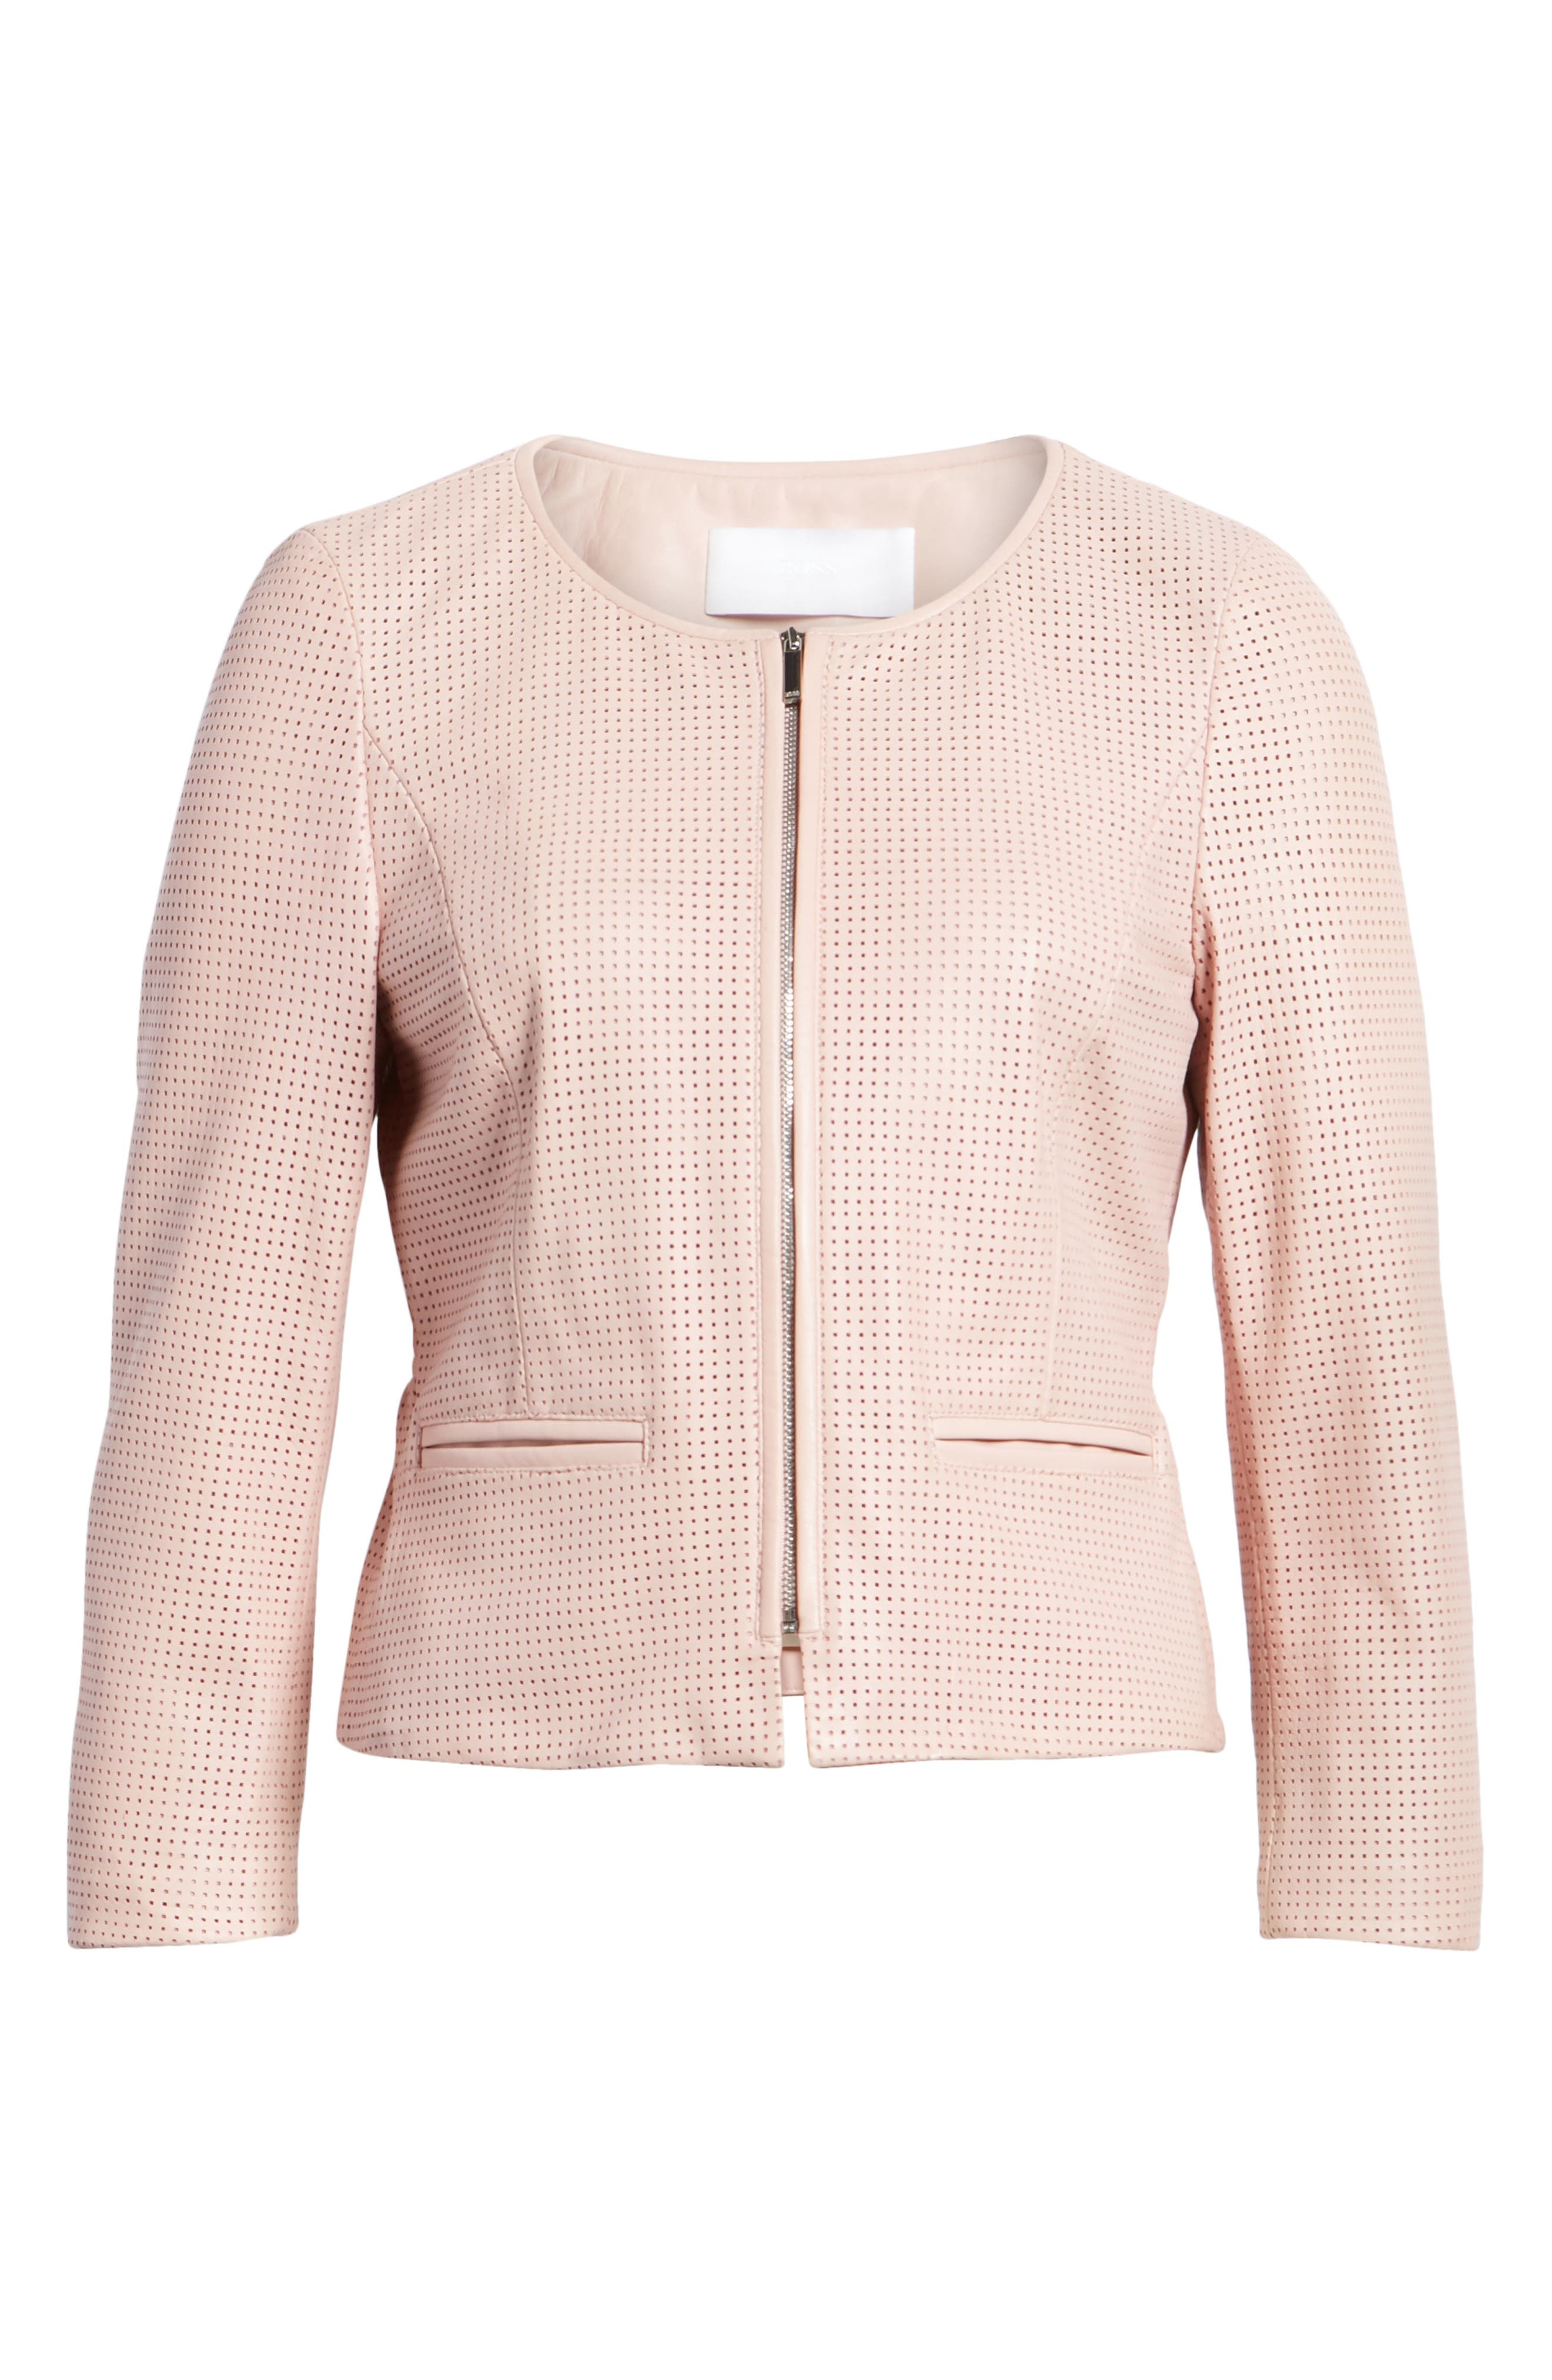 Sallotina Perforated Leather Jacket,                             Alternate thumbnail 7, color,                             Blush